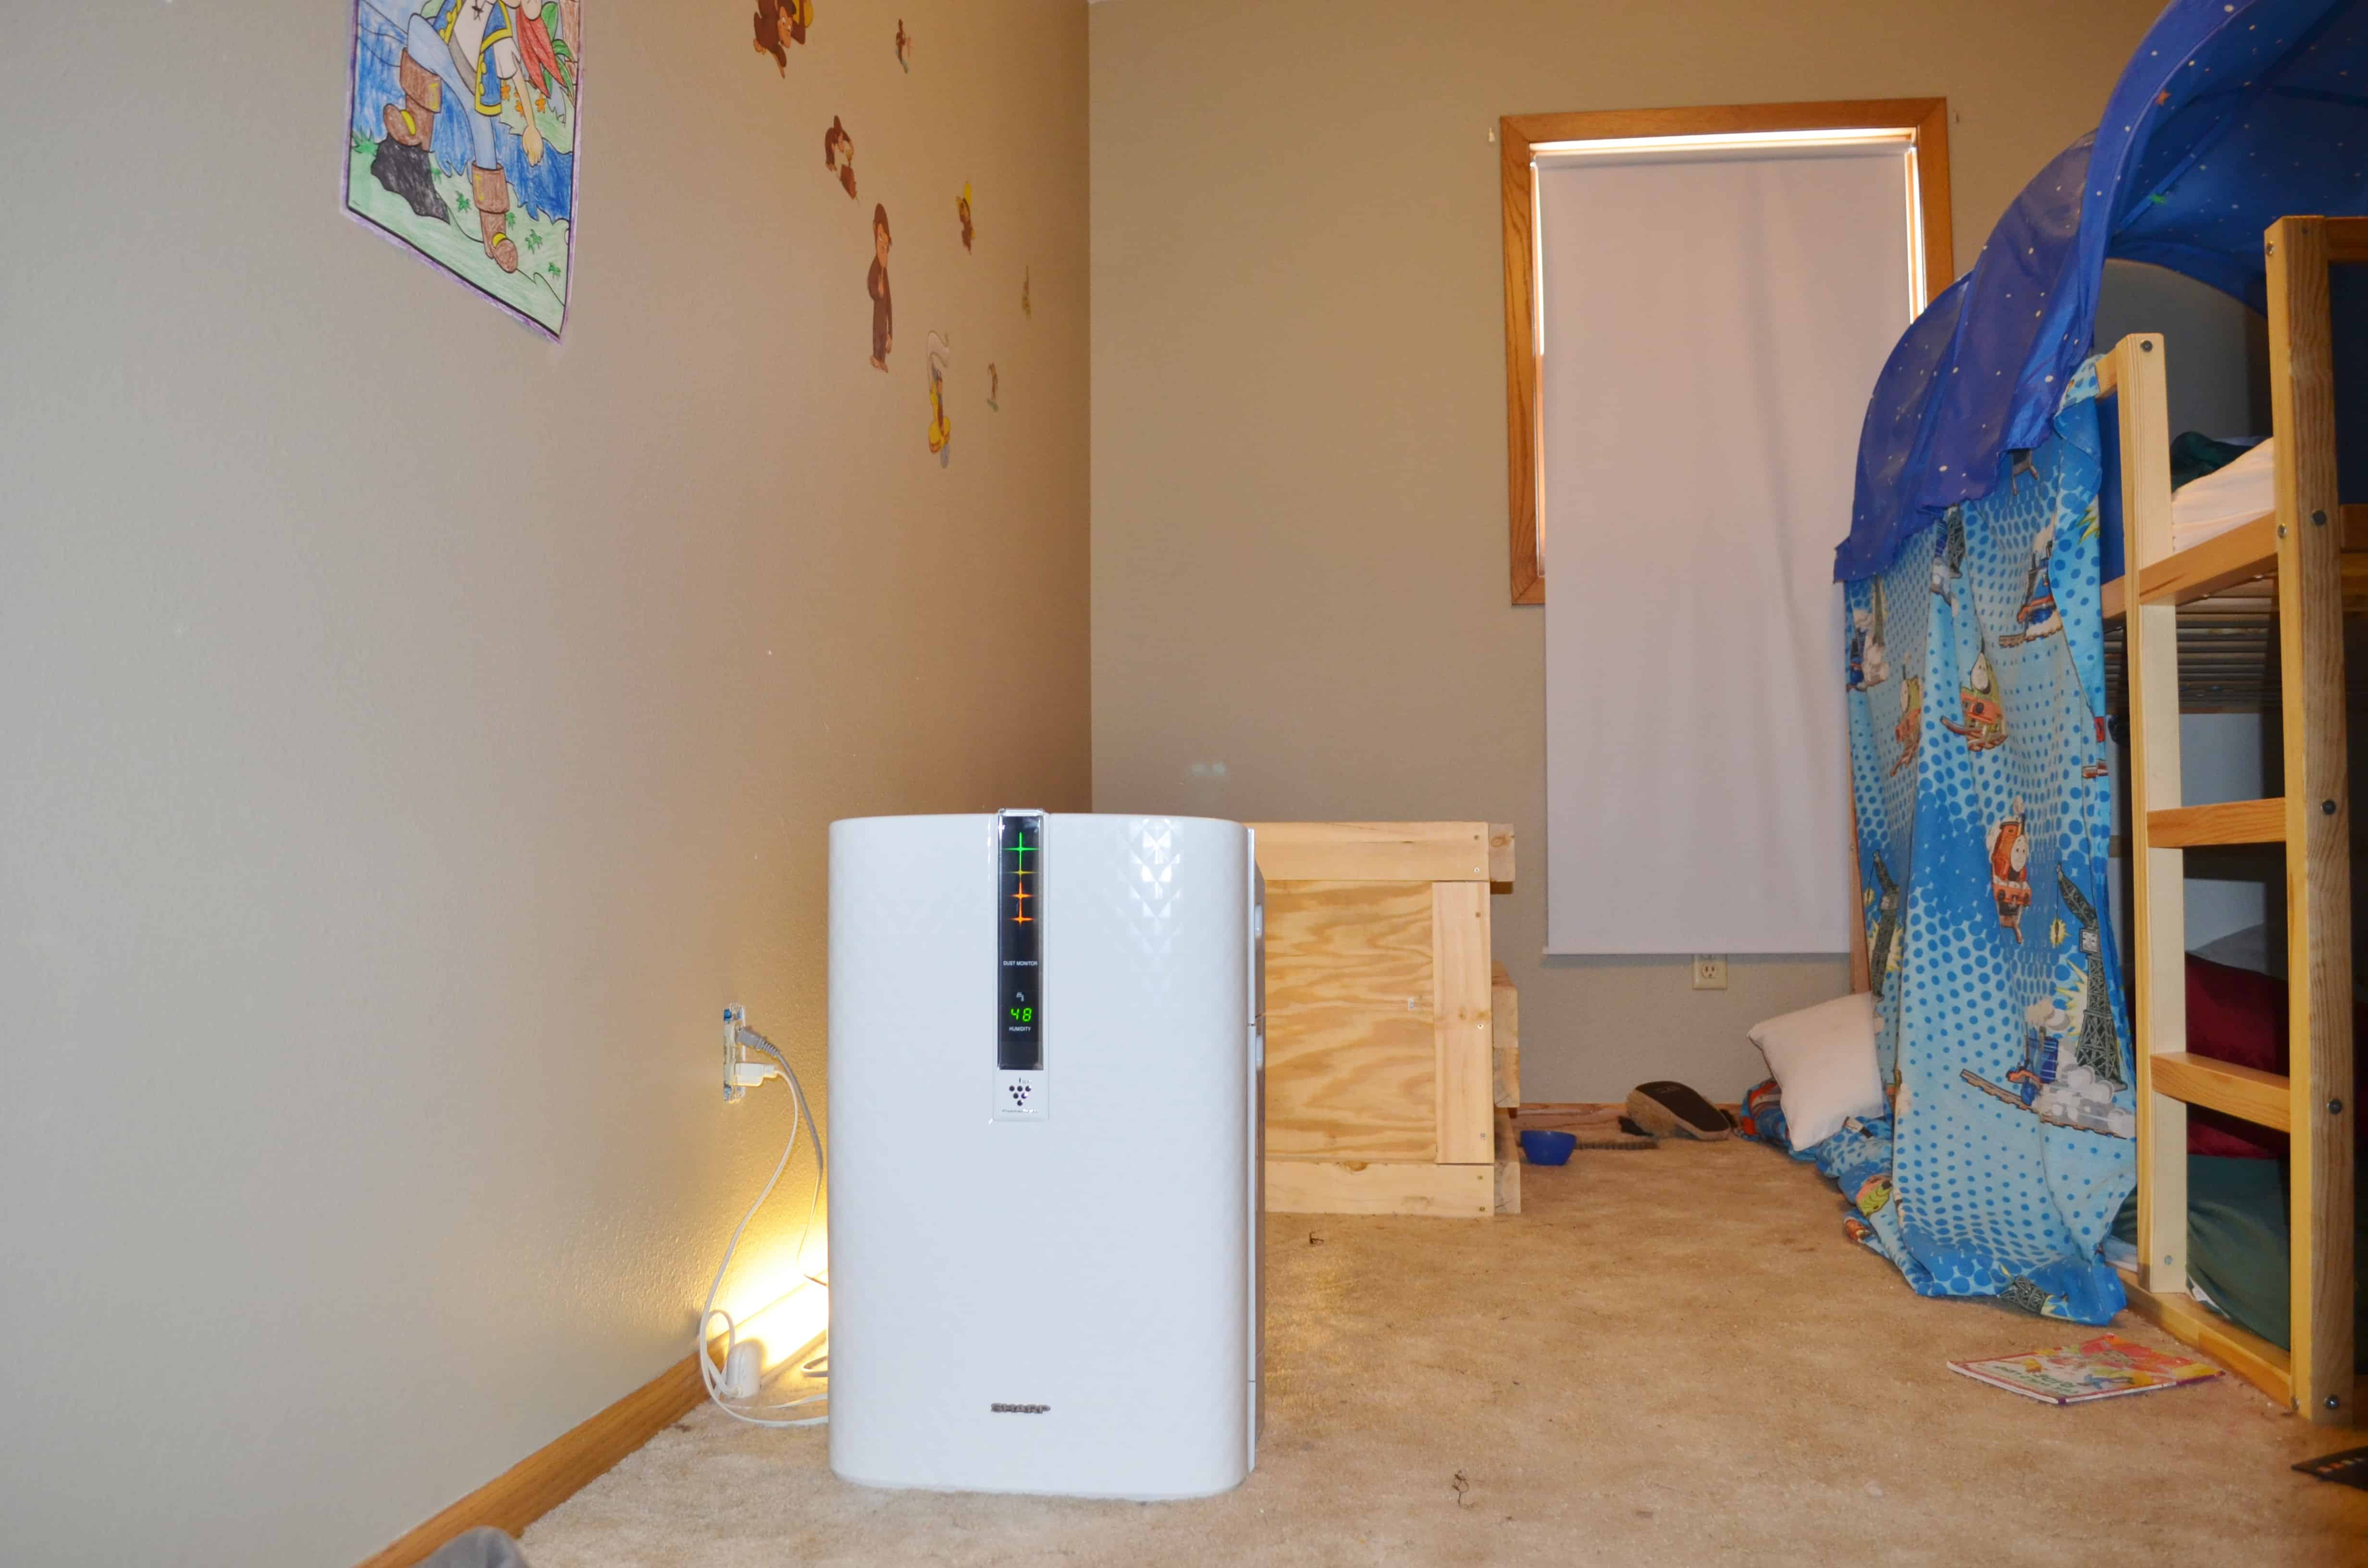 Sharp Plasmacluster Air Purifier with Humidifier Review from Best Buy  #754522